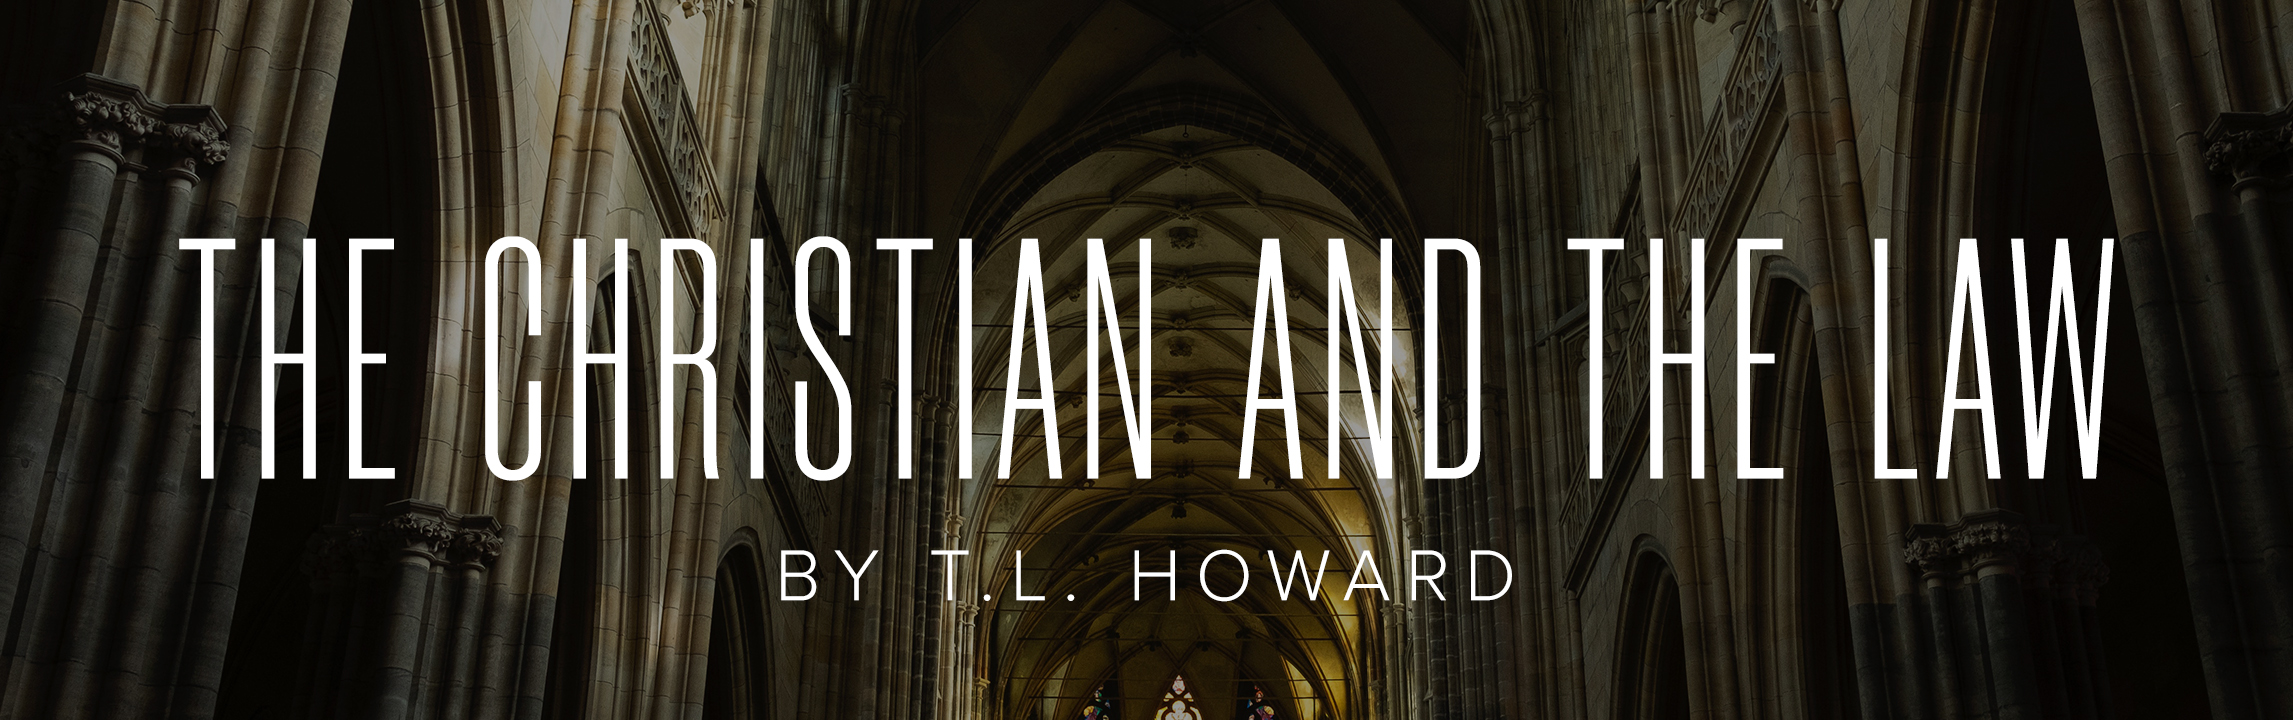 Download this special commentary by T.L. Howard and dive deeper into our study of Acts.